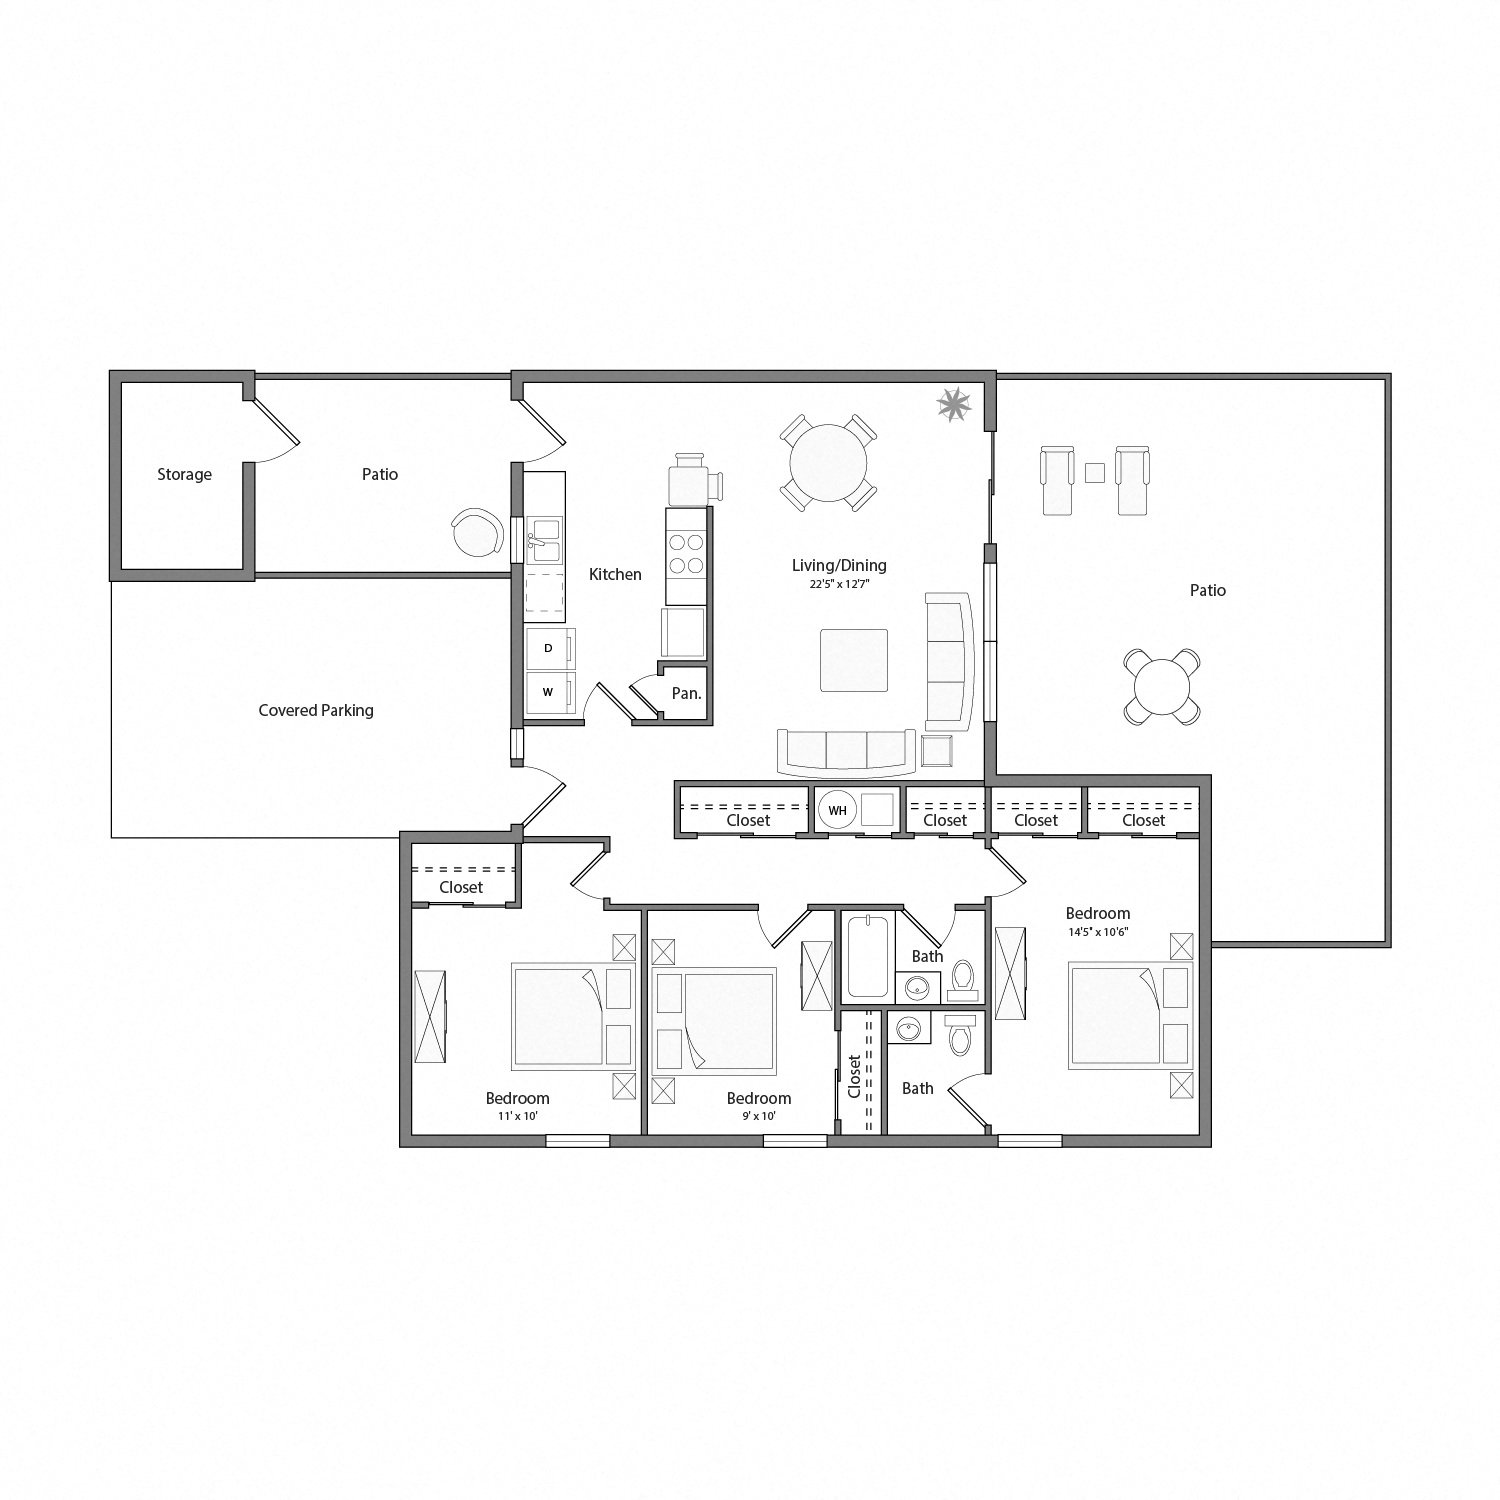 Laurel house floor plan diagram. Three bedrooms, one and a half bathrooms, a kitchen and adjacent laundry, an open living and dining area, two patios, and a covered parking area.